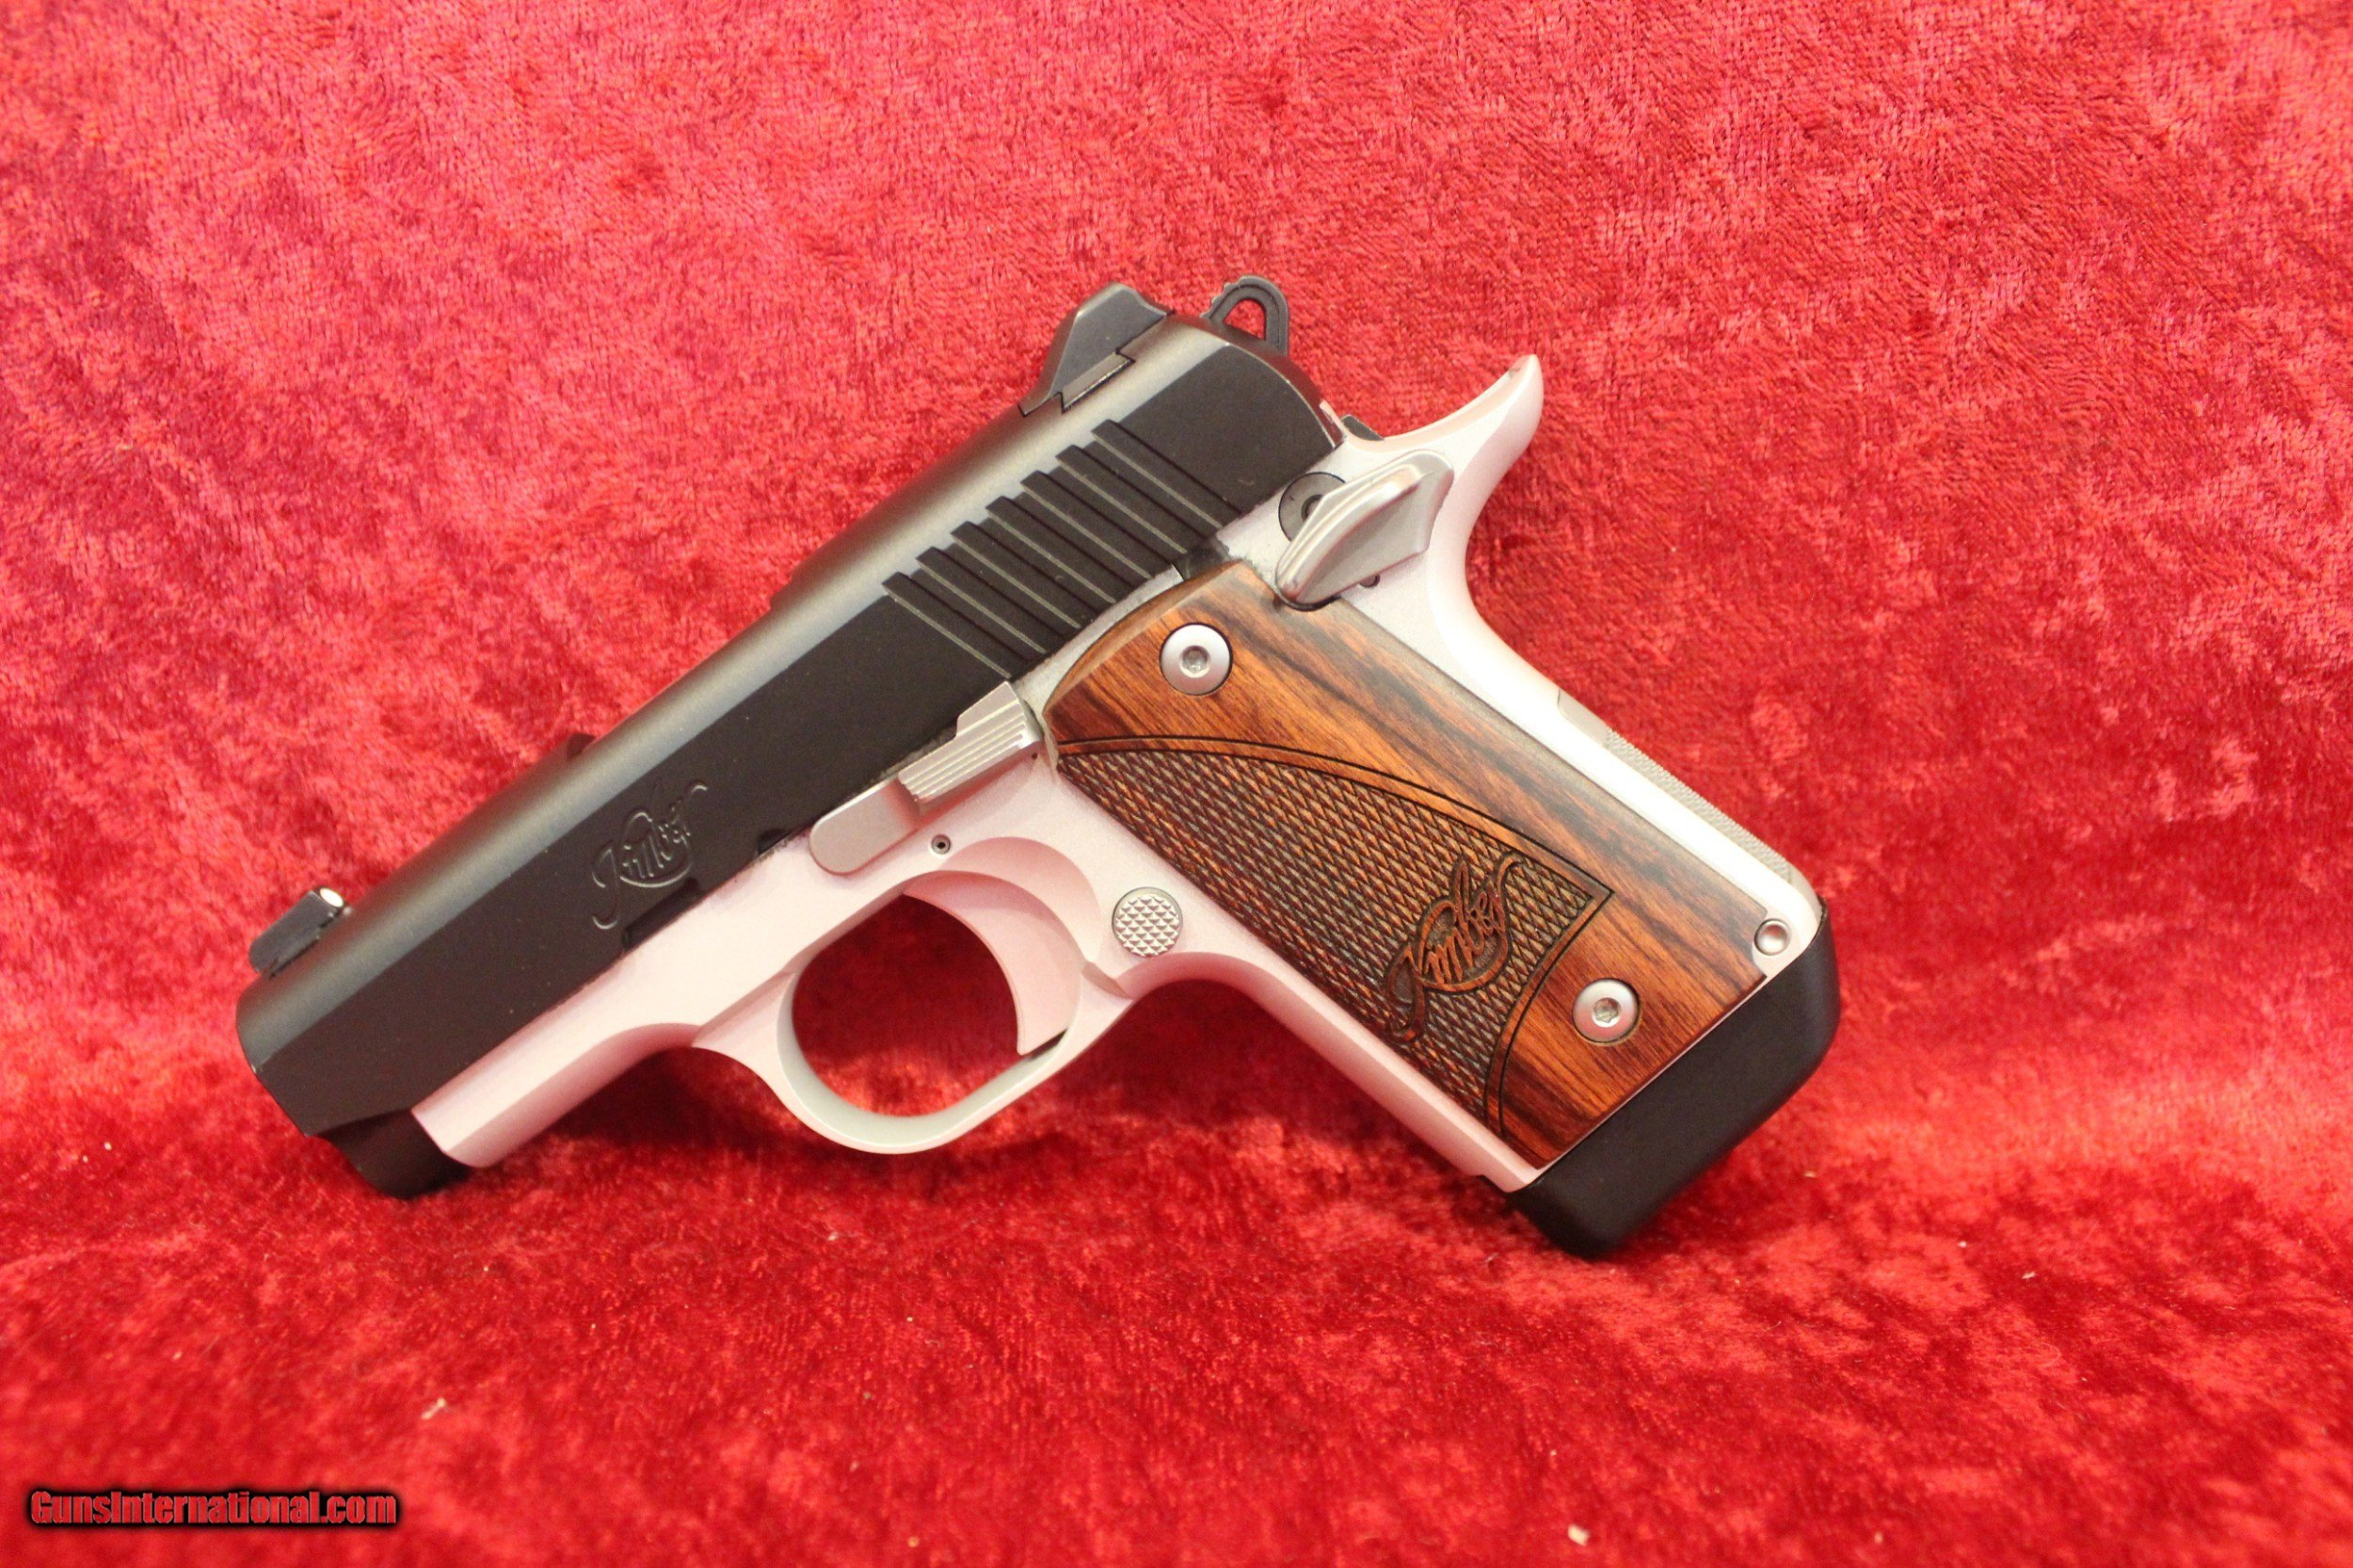 Kimber Micro 9 Two-Tone 9 mm pistol Rosewood Grips, 3